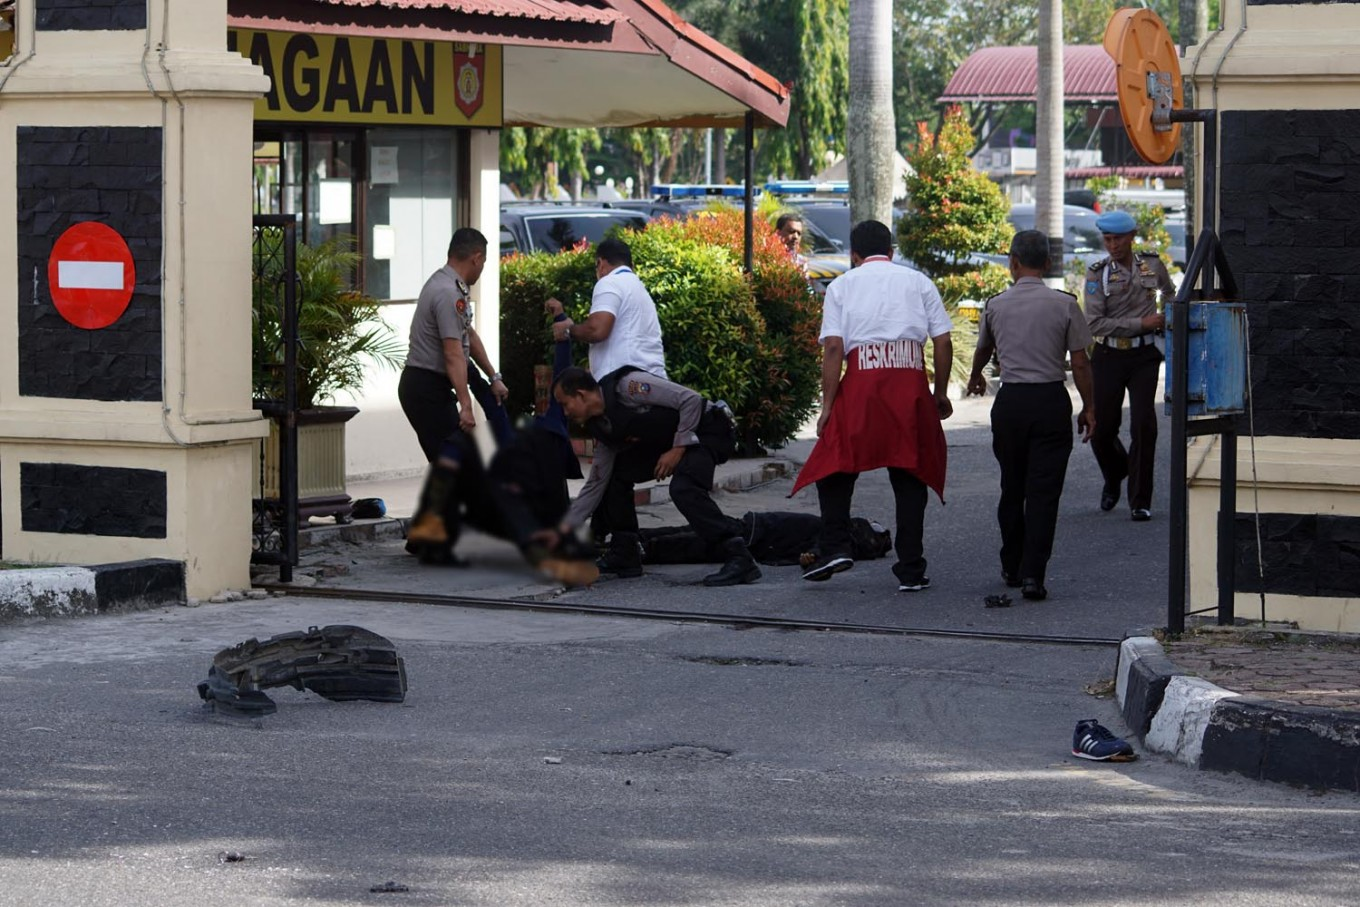 Riau Police attackers IS-supporters, but not JAD: Police